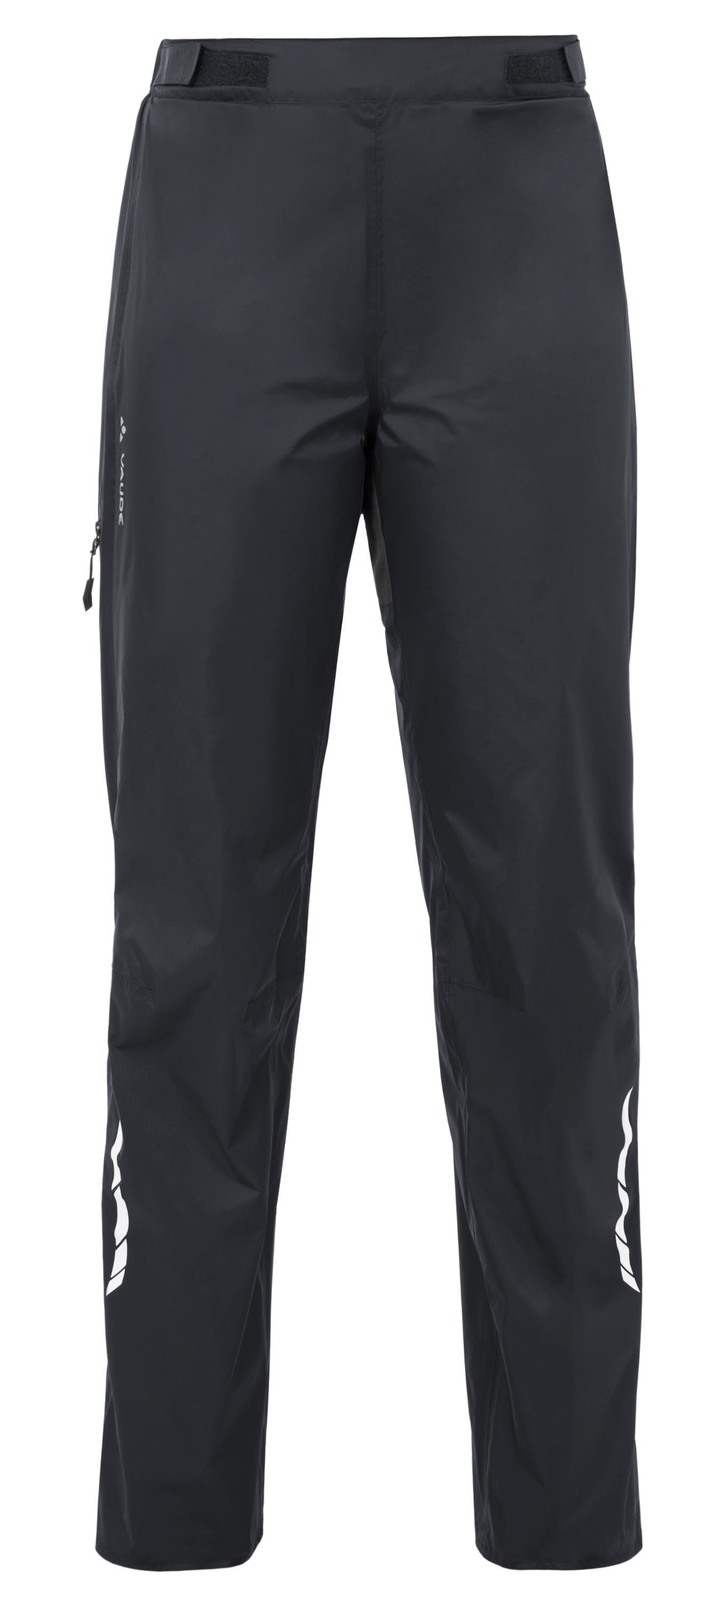 Women´s Tremalzo Rain Pants black Größe 46 - schneider-sports